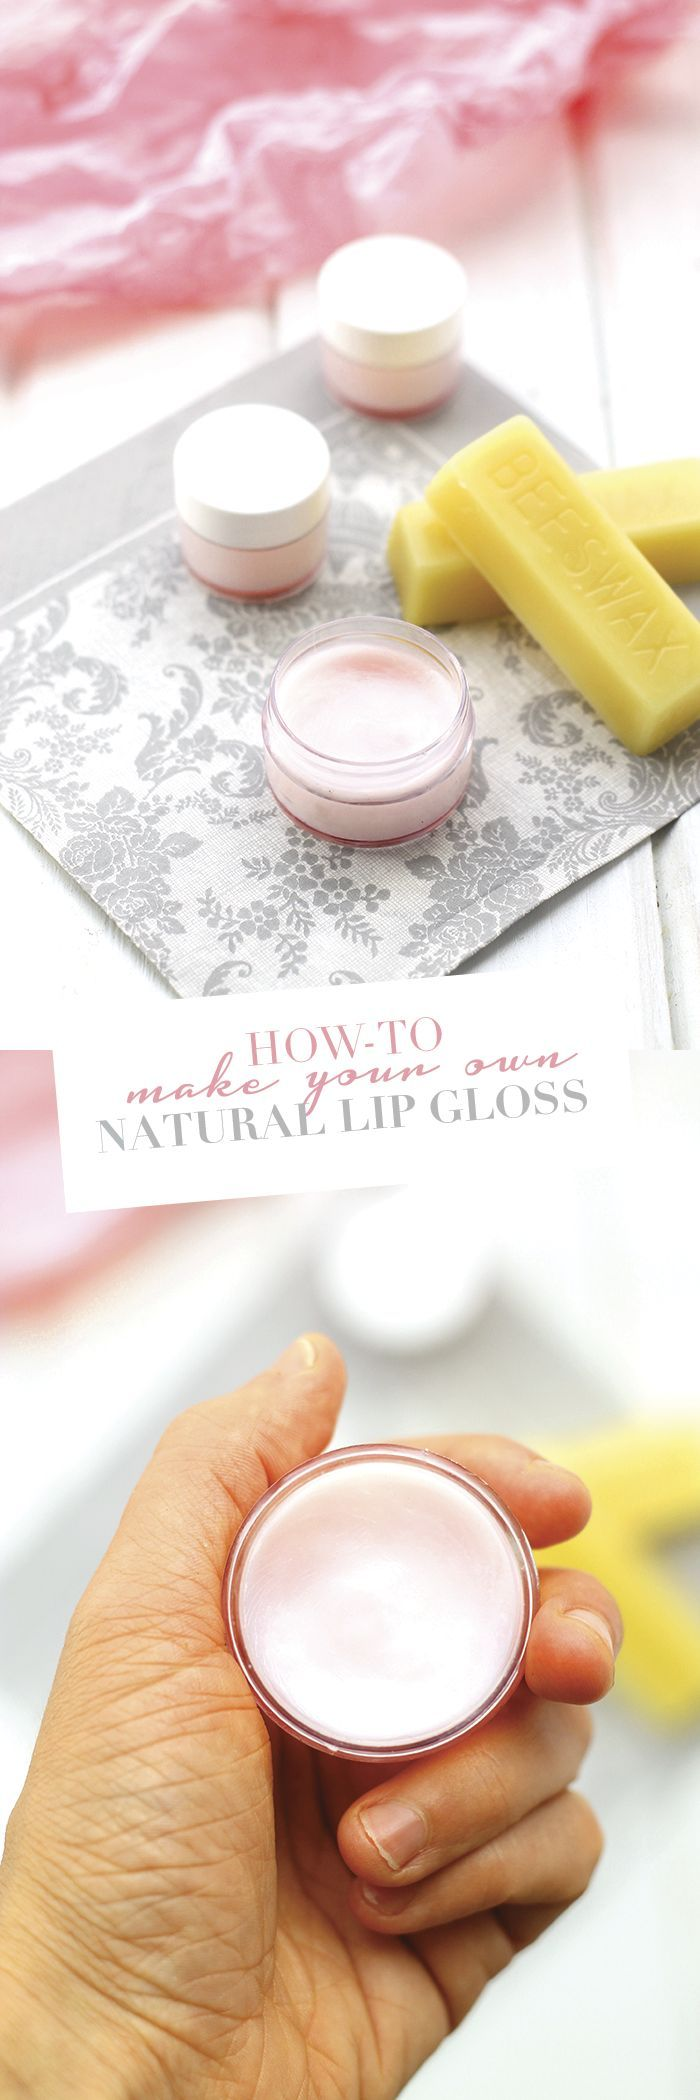 With just 4 simple ingredients, you can have homemade natural lip gloss in just a few minutes. Ditch the chemical-laden versions and learn how to make your own natural lip gloss!